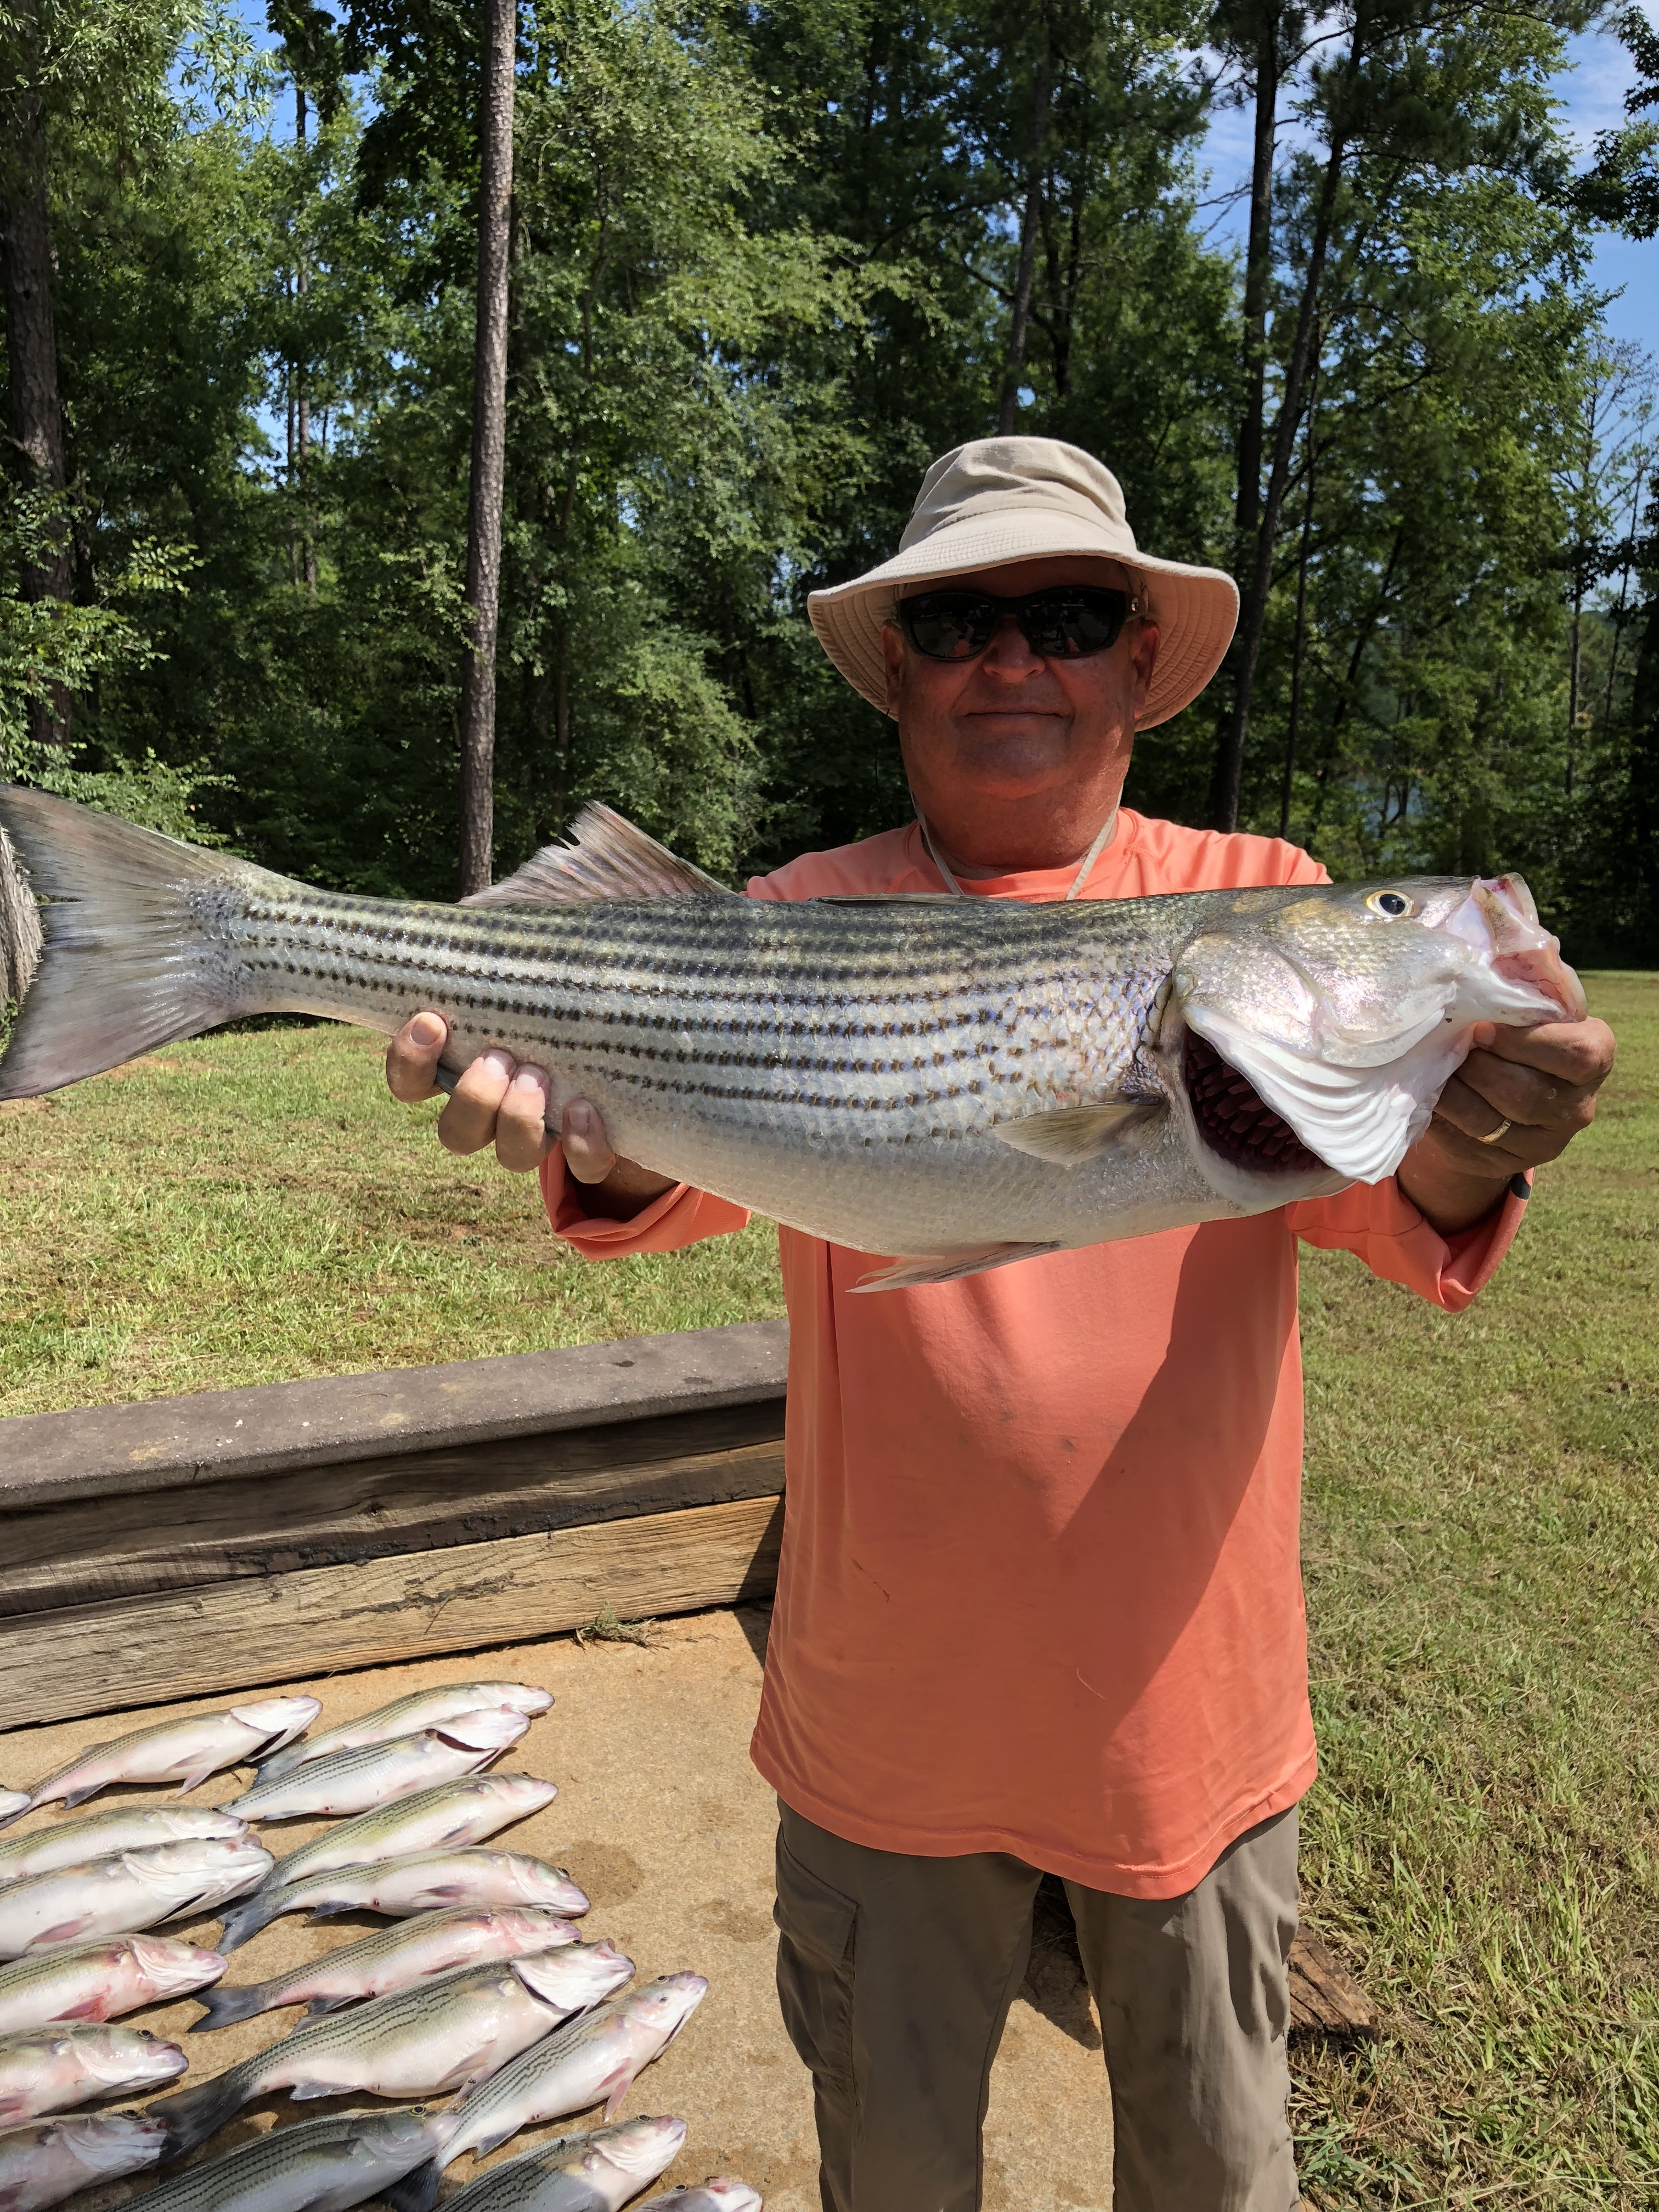 August 10, 2018 Ricky Cleghorn with his 12 pound striper IMG_2298